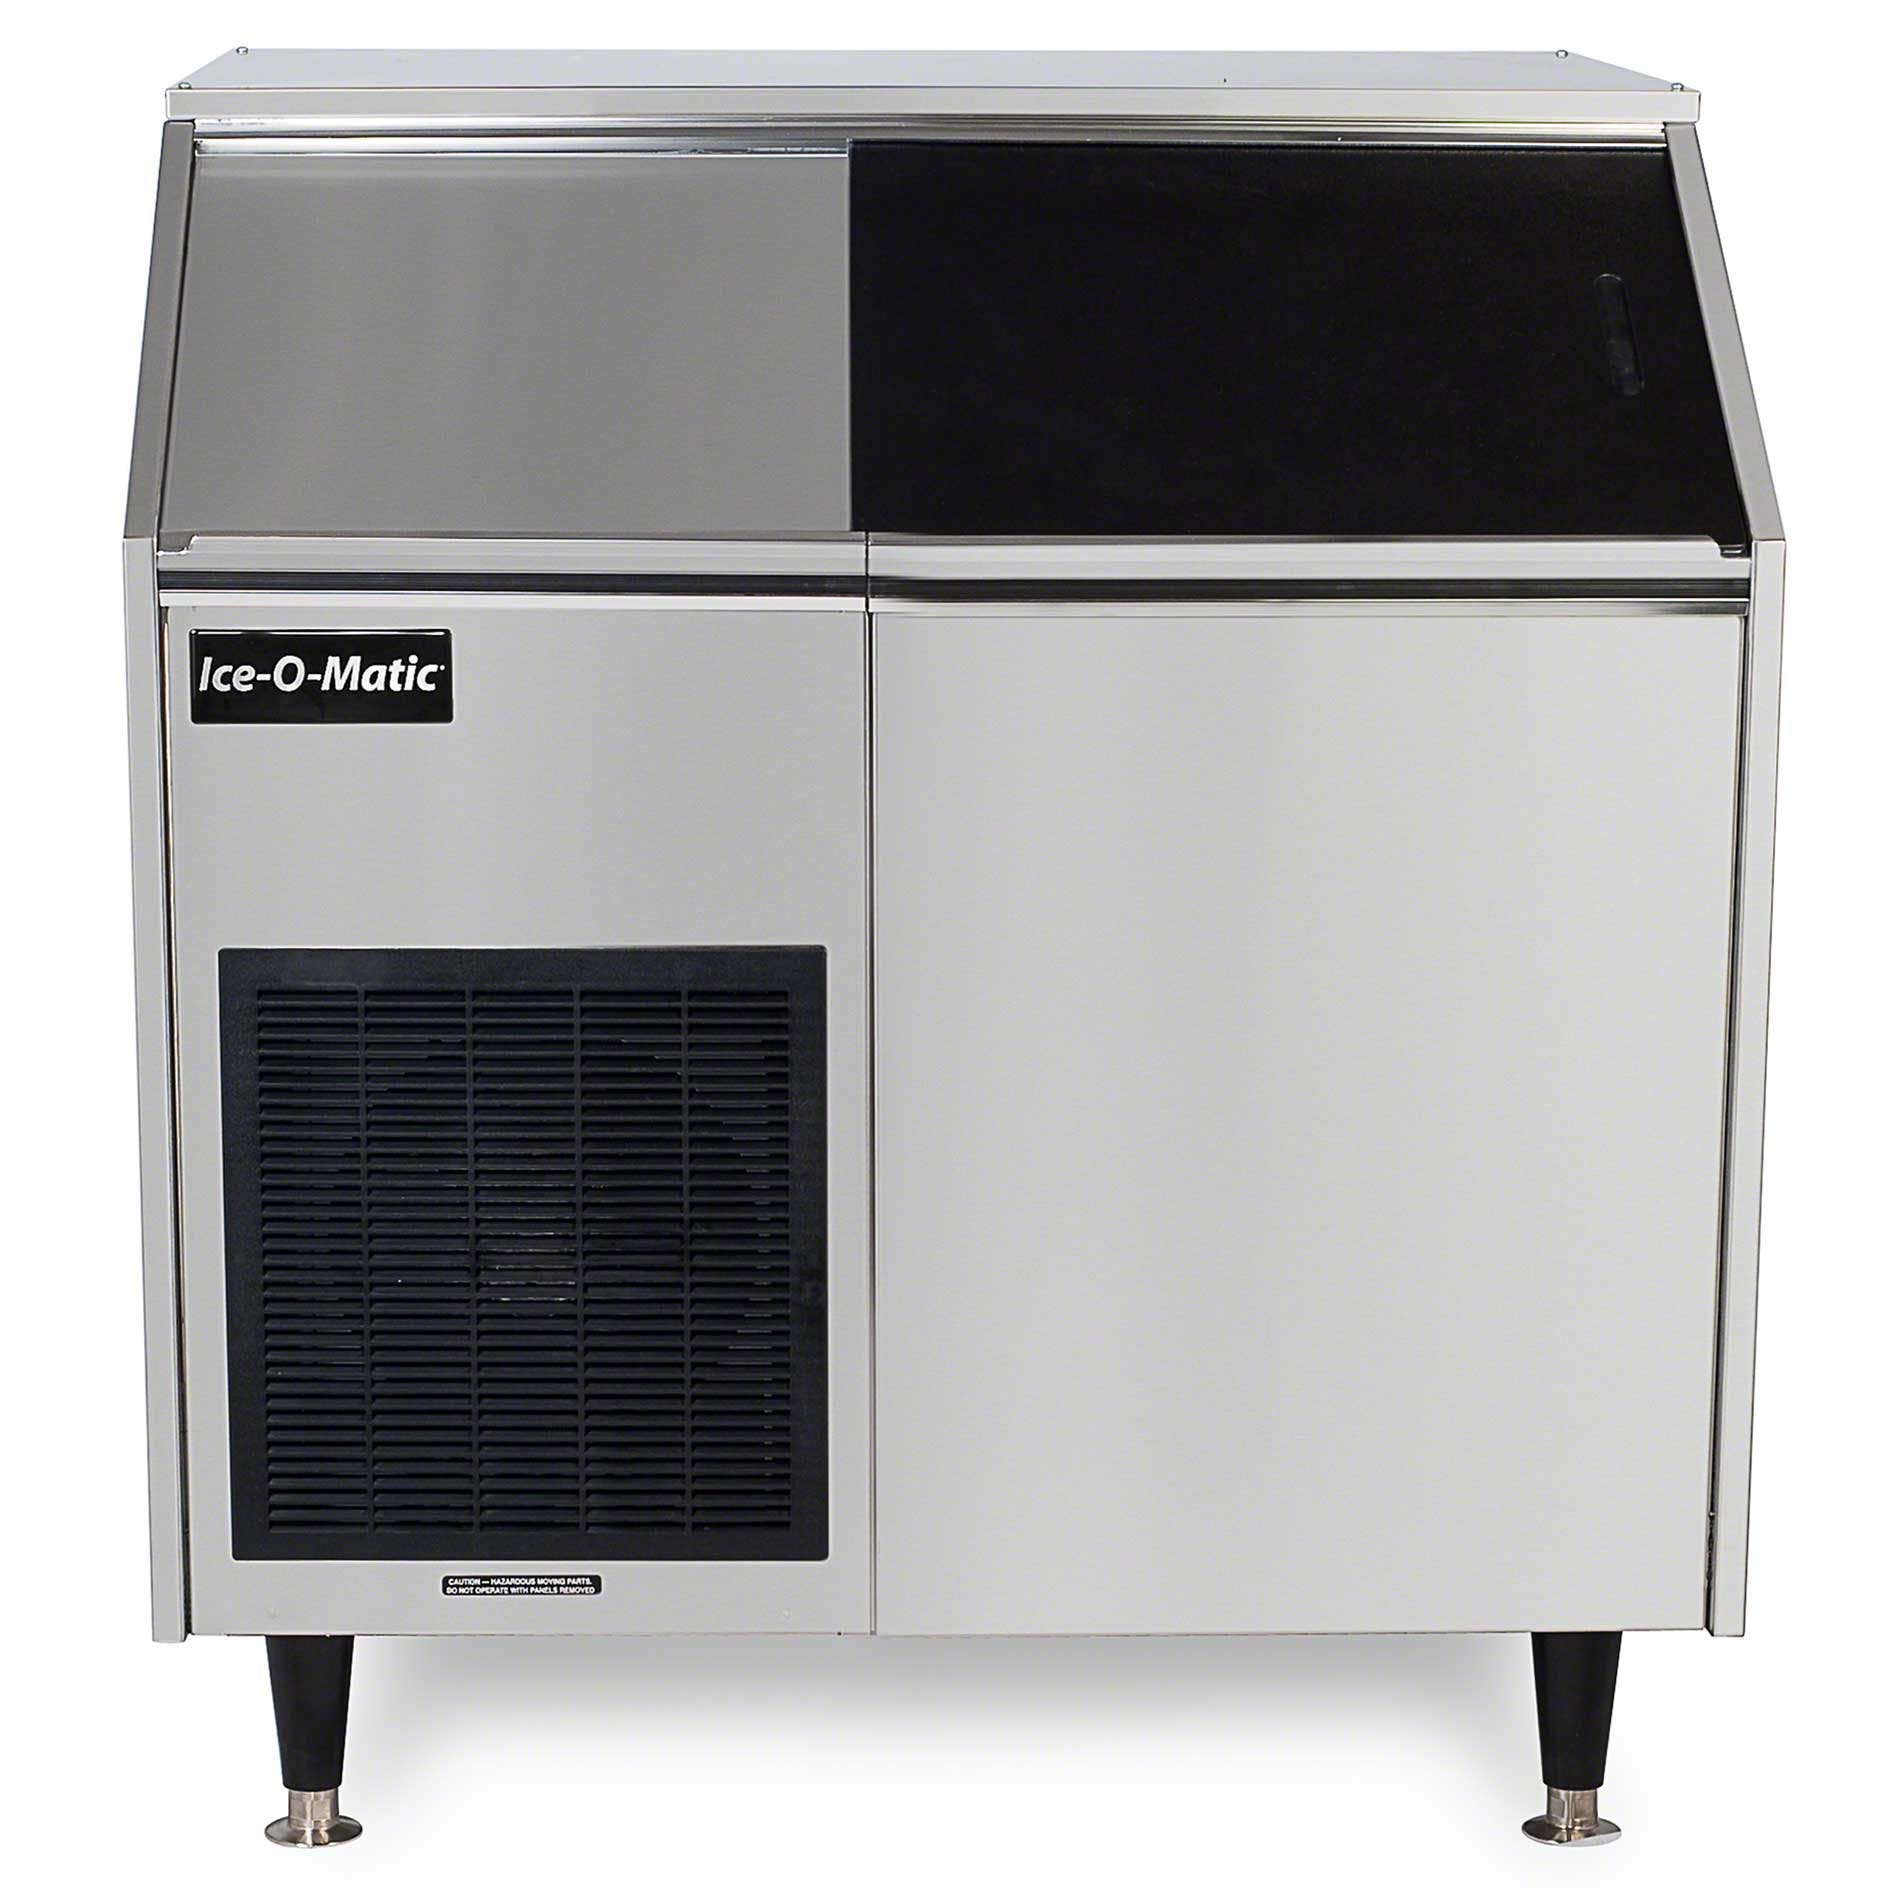 Ice-O-Matic - EF450A38S 472 lb Self-Contained Flake Ice Machine Ice machine sold by Food Service Warehouse